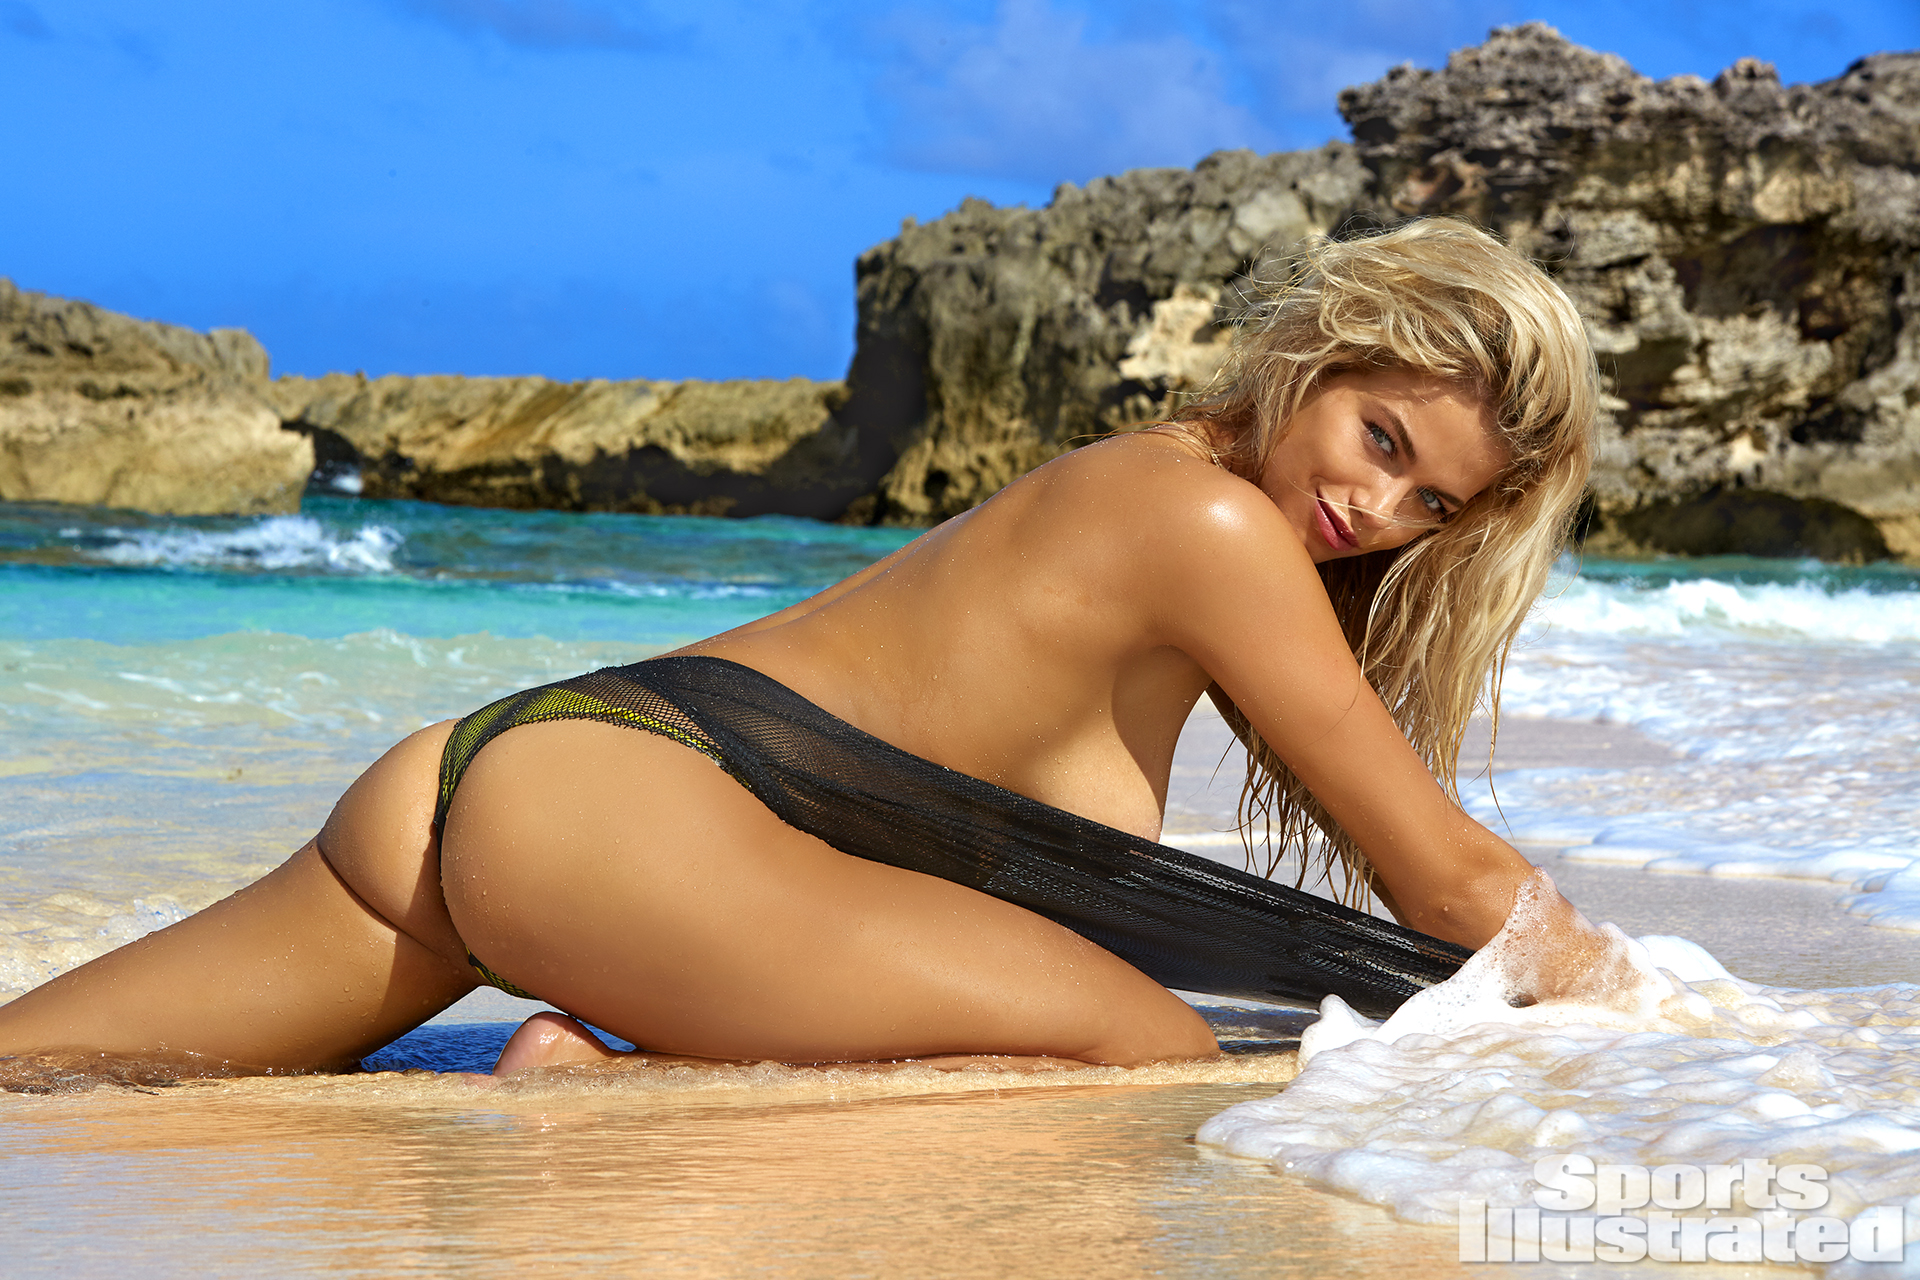 Hailey Clauson was photographed by James Macari in Turks & Caicos. Swimsuit by DIESEL And NOE Garments.